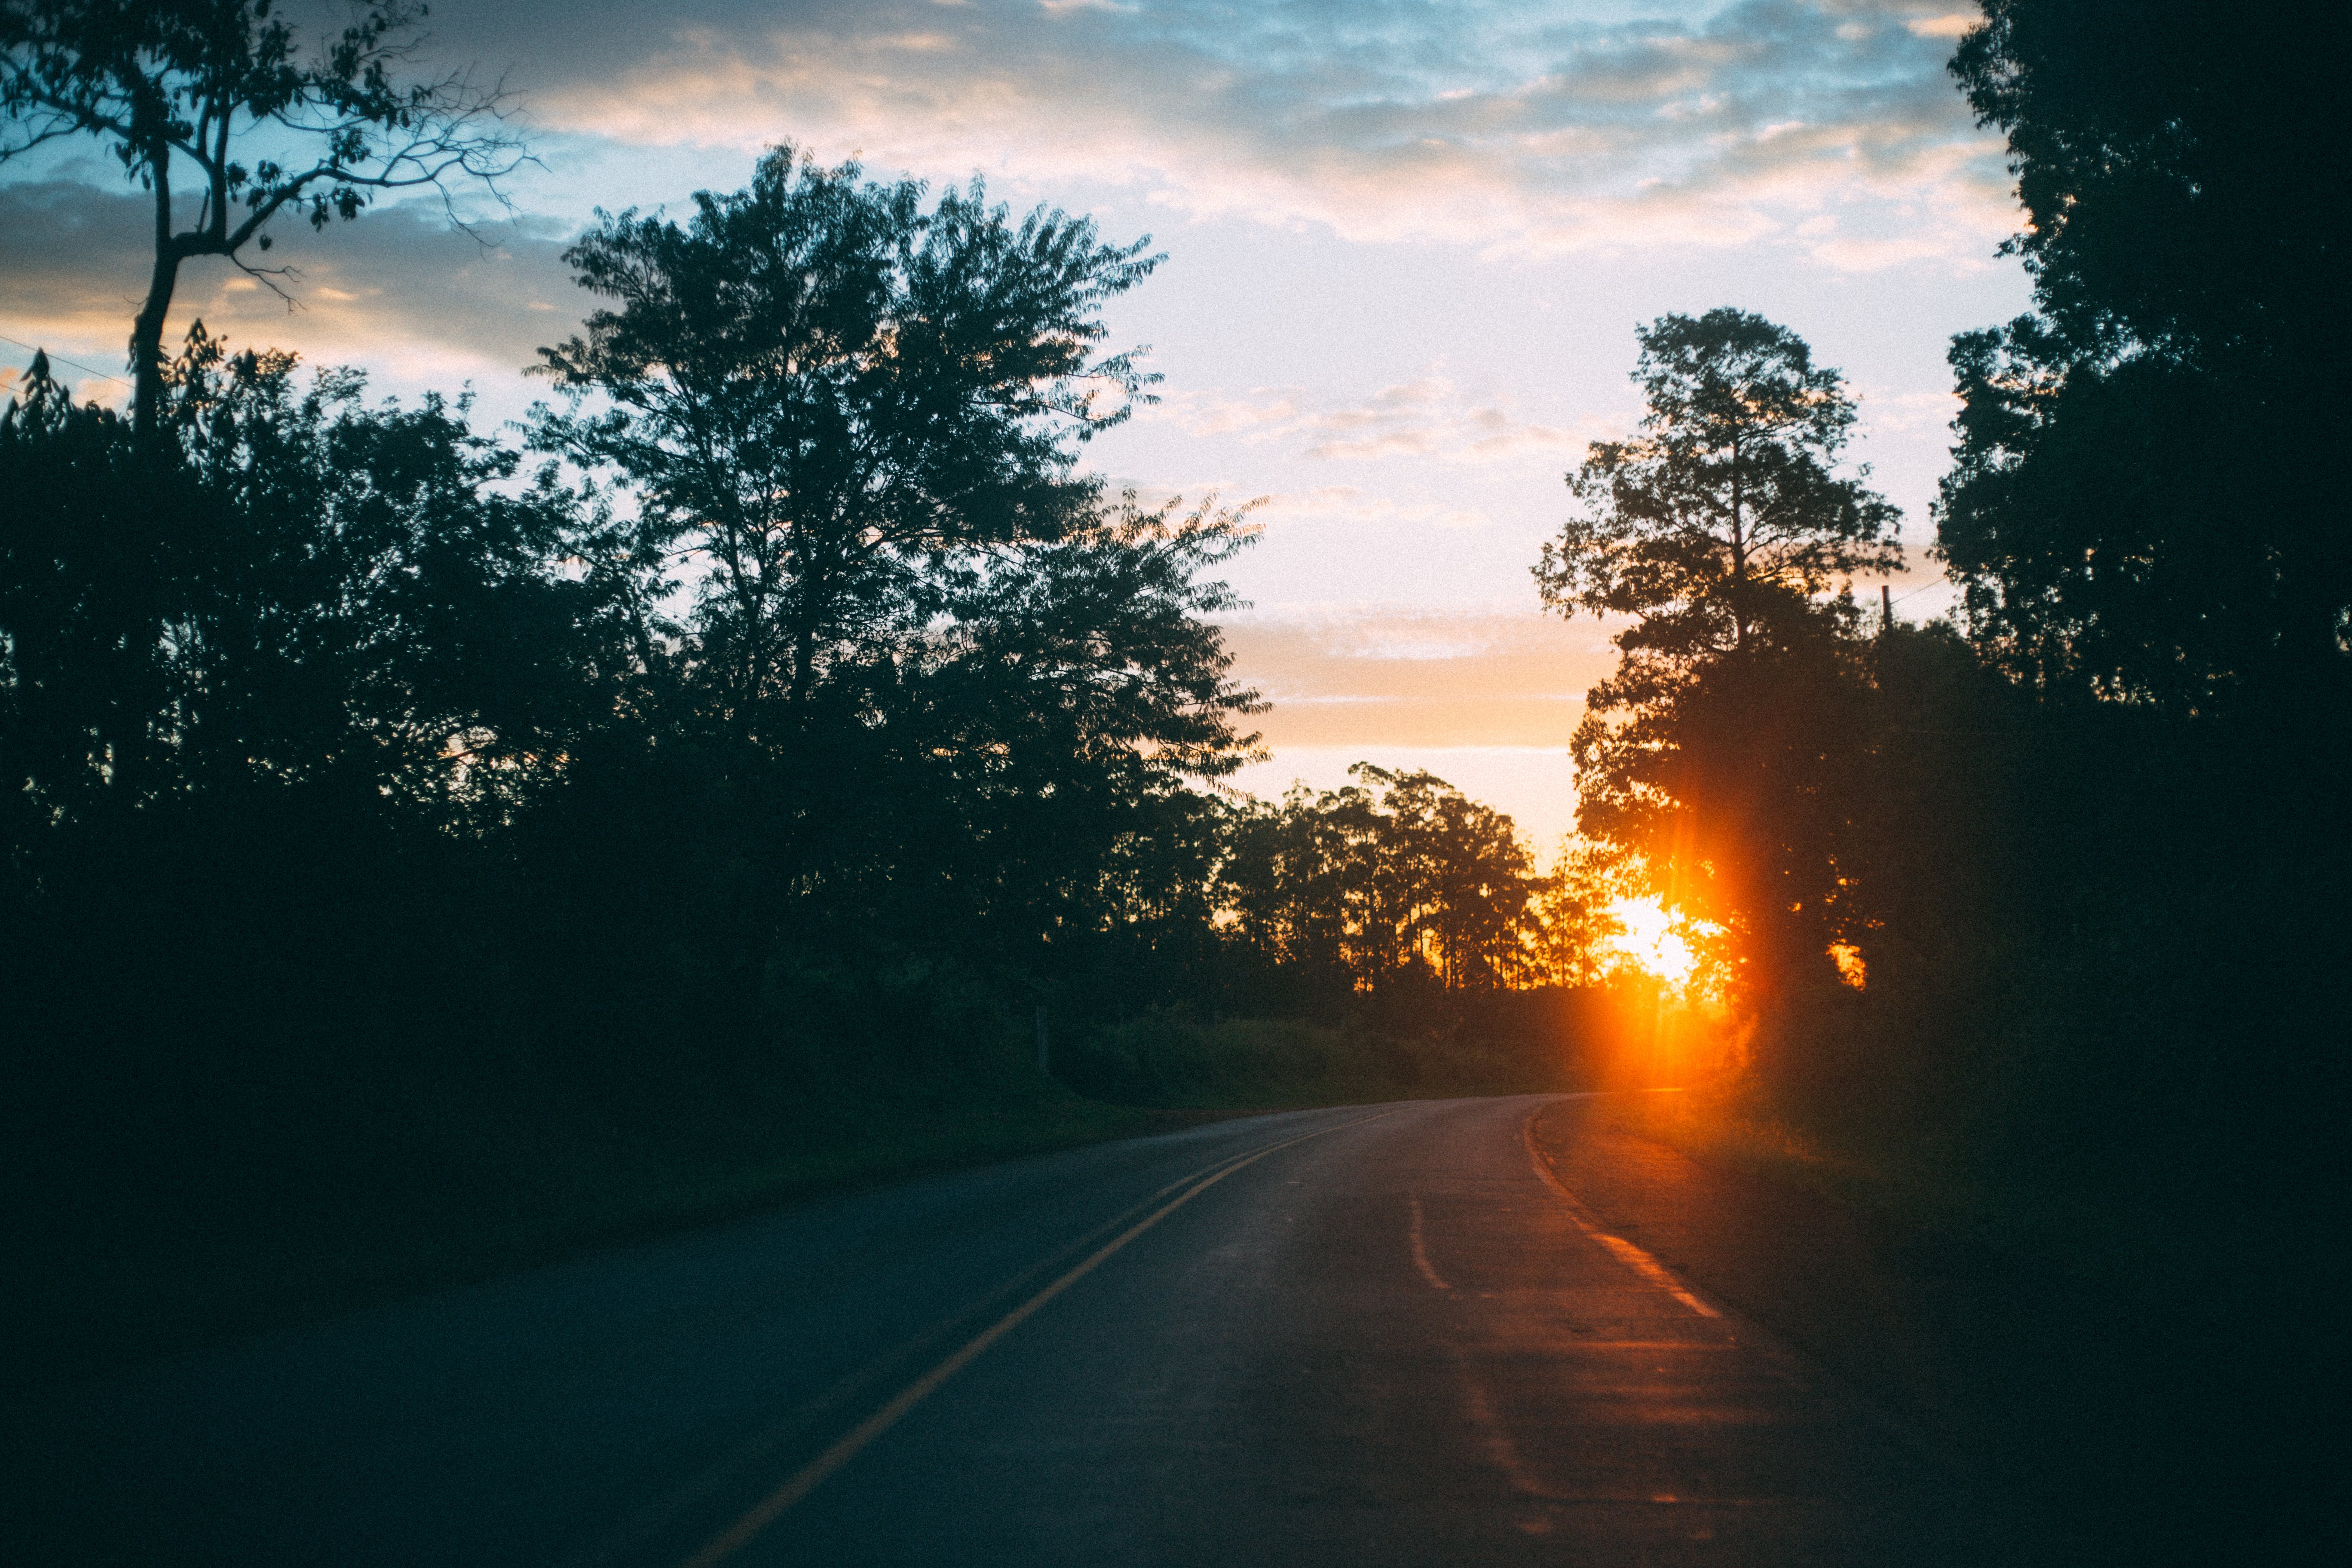 Curved Road With Trees during Sunset